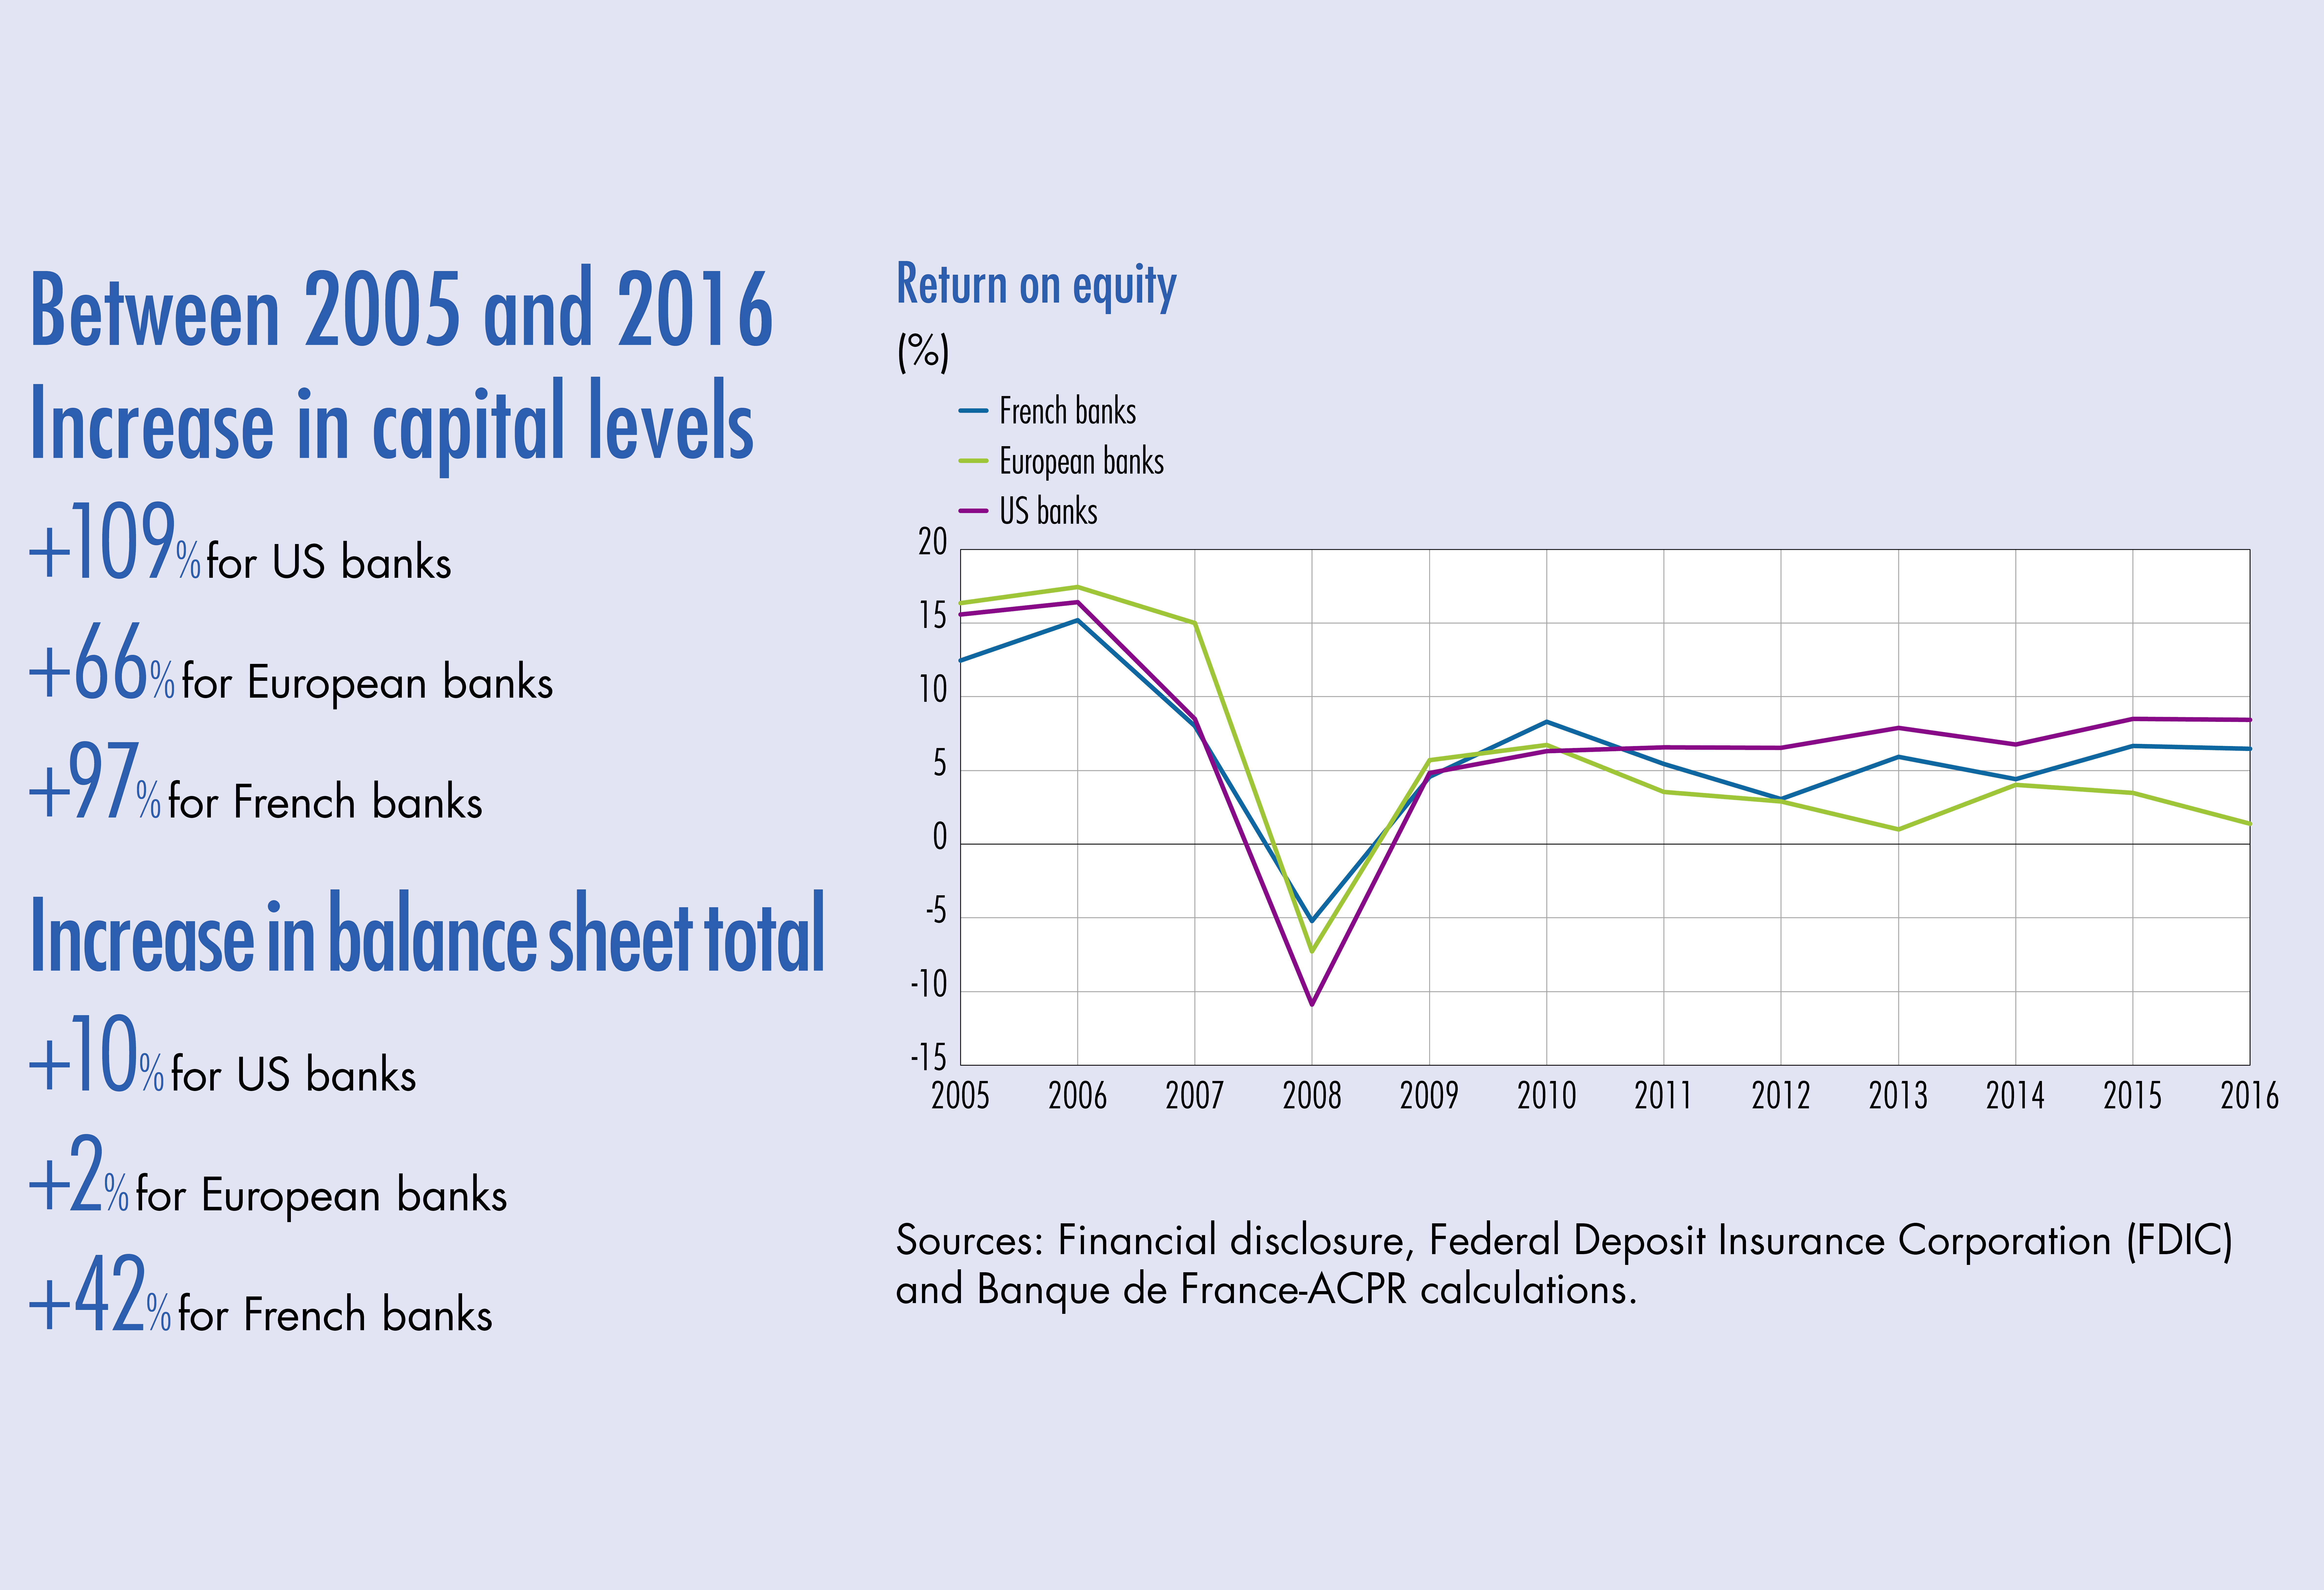 Chart: Between 2005 and 2016 Increase in capital levels - Increase in balance sheet total